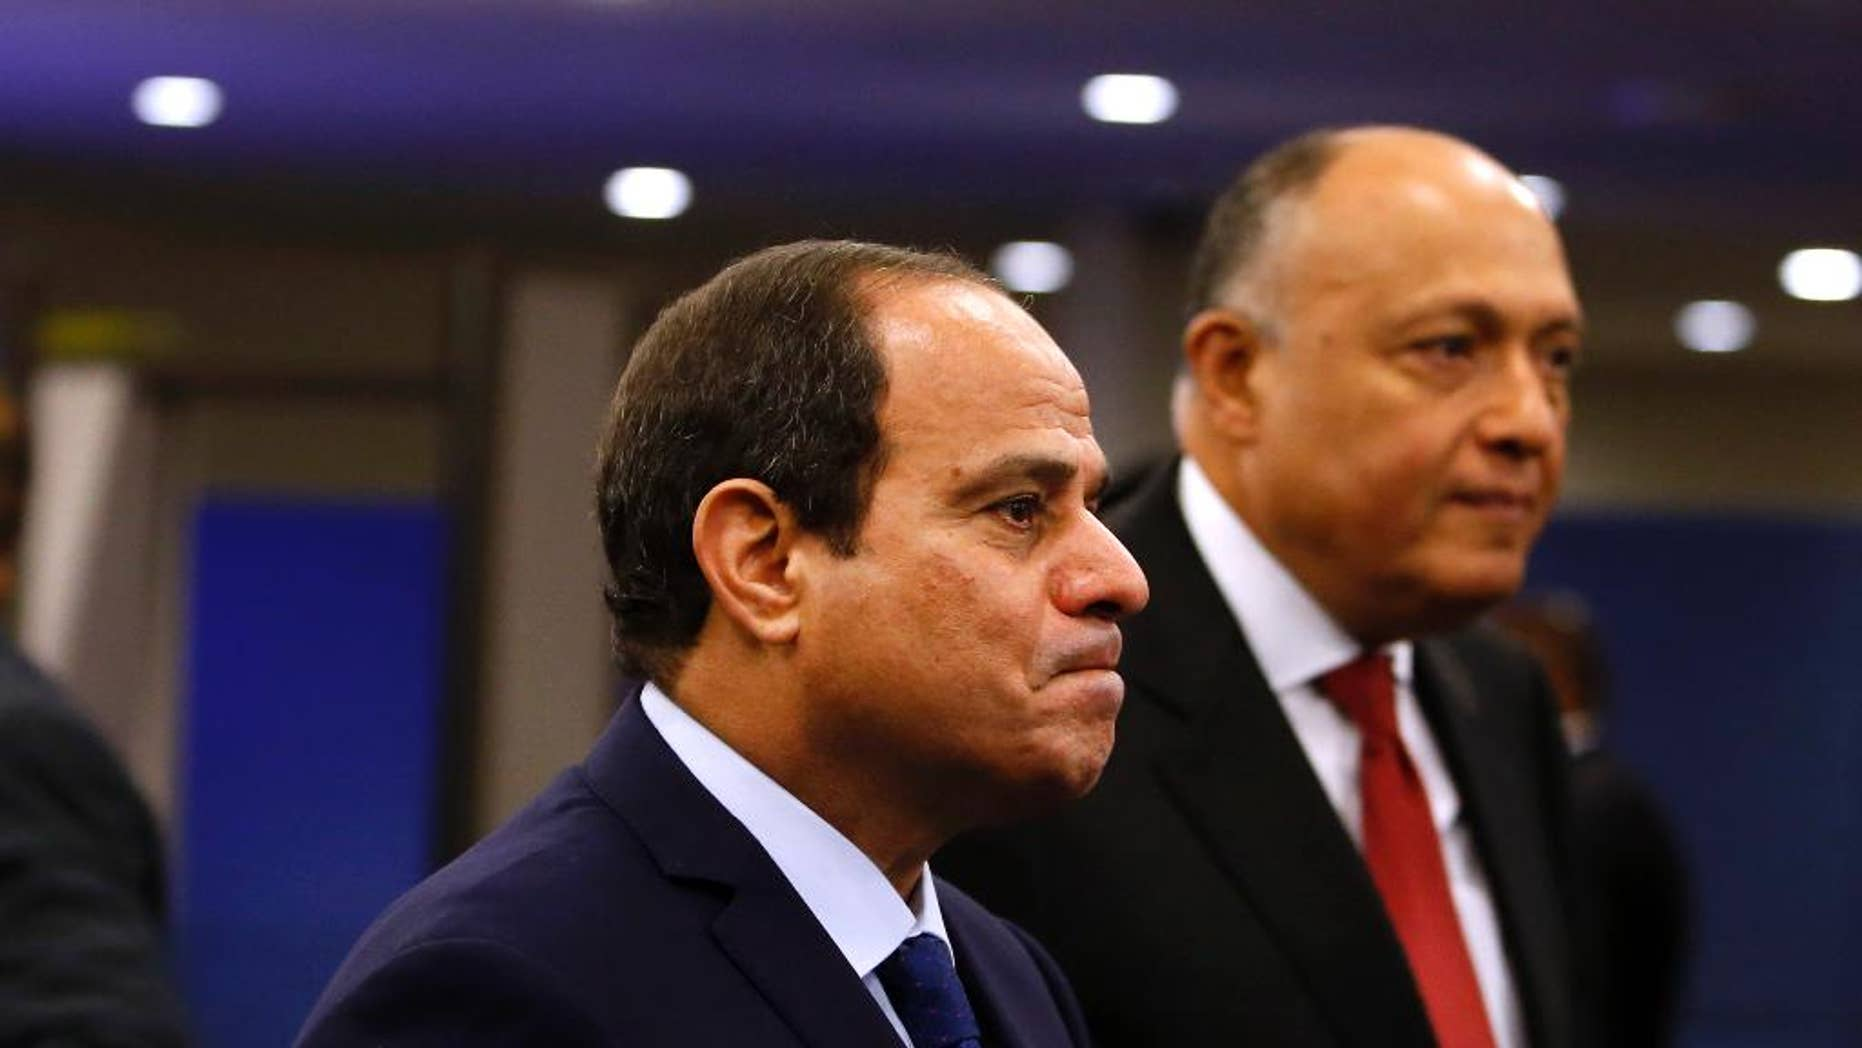 FILE - In this Monday, Sept. 28, 2015 file photo, Egypt's President Abdel Fattah el-Sissi arrives for the 70th session of the United Nations General Assembly at U.N. headquarters. In just the last three weeks, according to rights lawyers, nearly 1,300 were detained by police as the highly militarized force went after organizers and demonstrators protesting the surrender of control over two Red Sea islands to Saudi Arabia in a deal that raised suspicions about a sell-off. (AP Photo/Jason DeCrow, File)